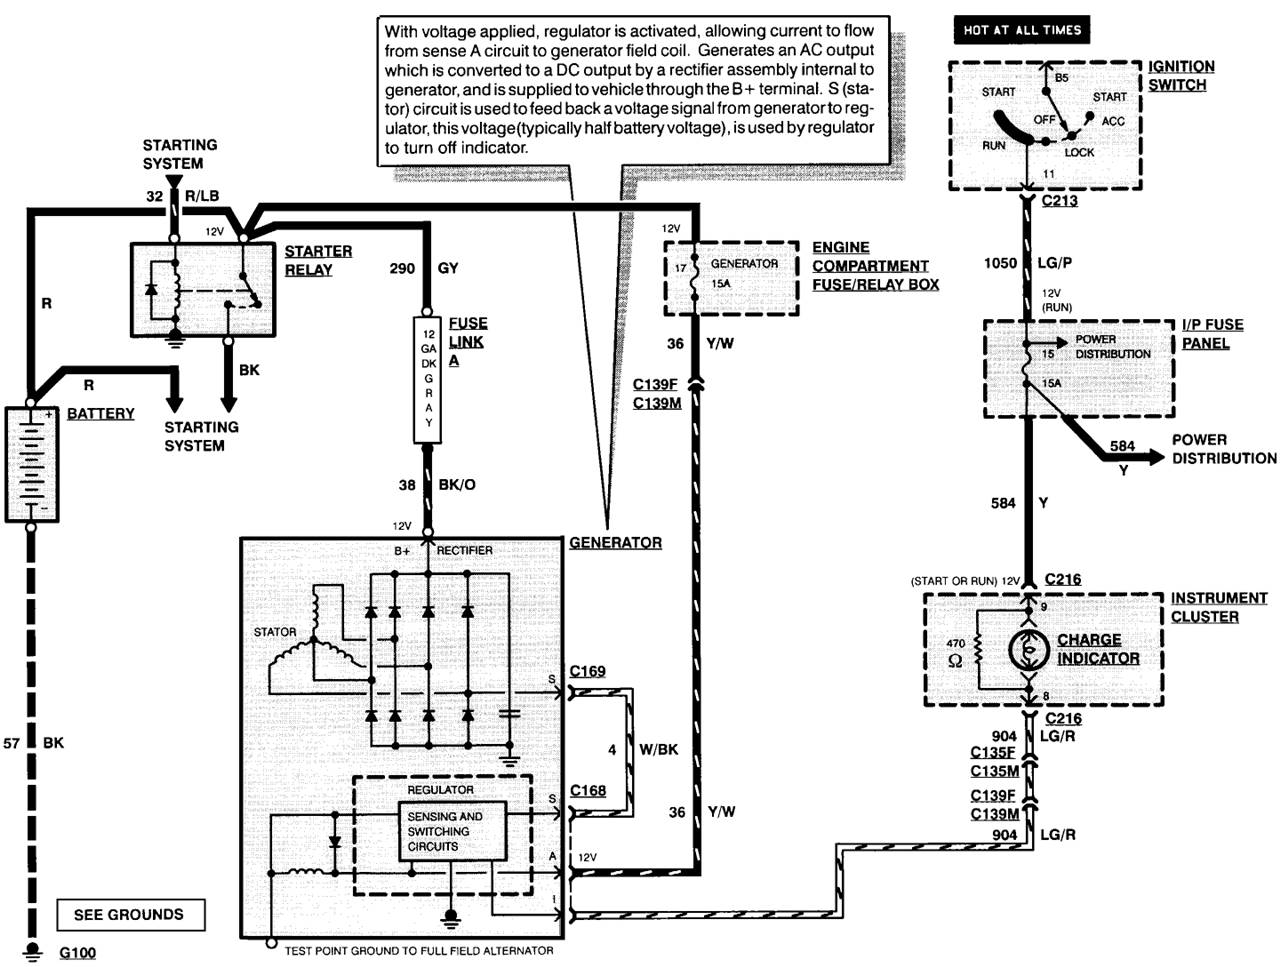 hight resolution of 1990 ford f150 alternator wiring diagram wiring diagram1990 ford f150 alternator wiring diagram